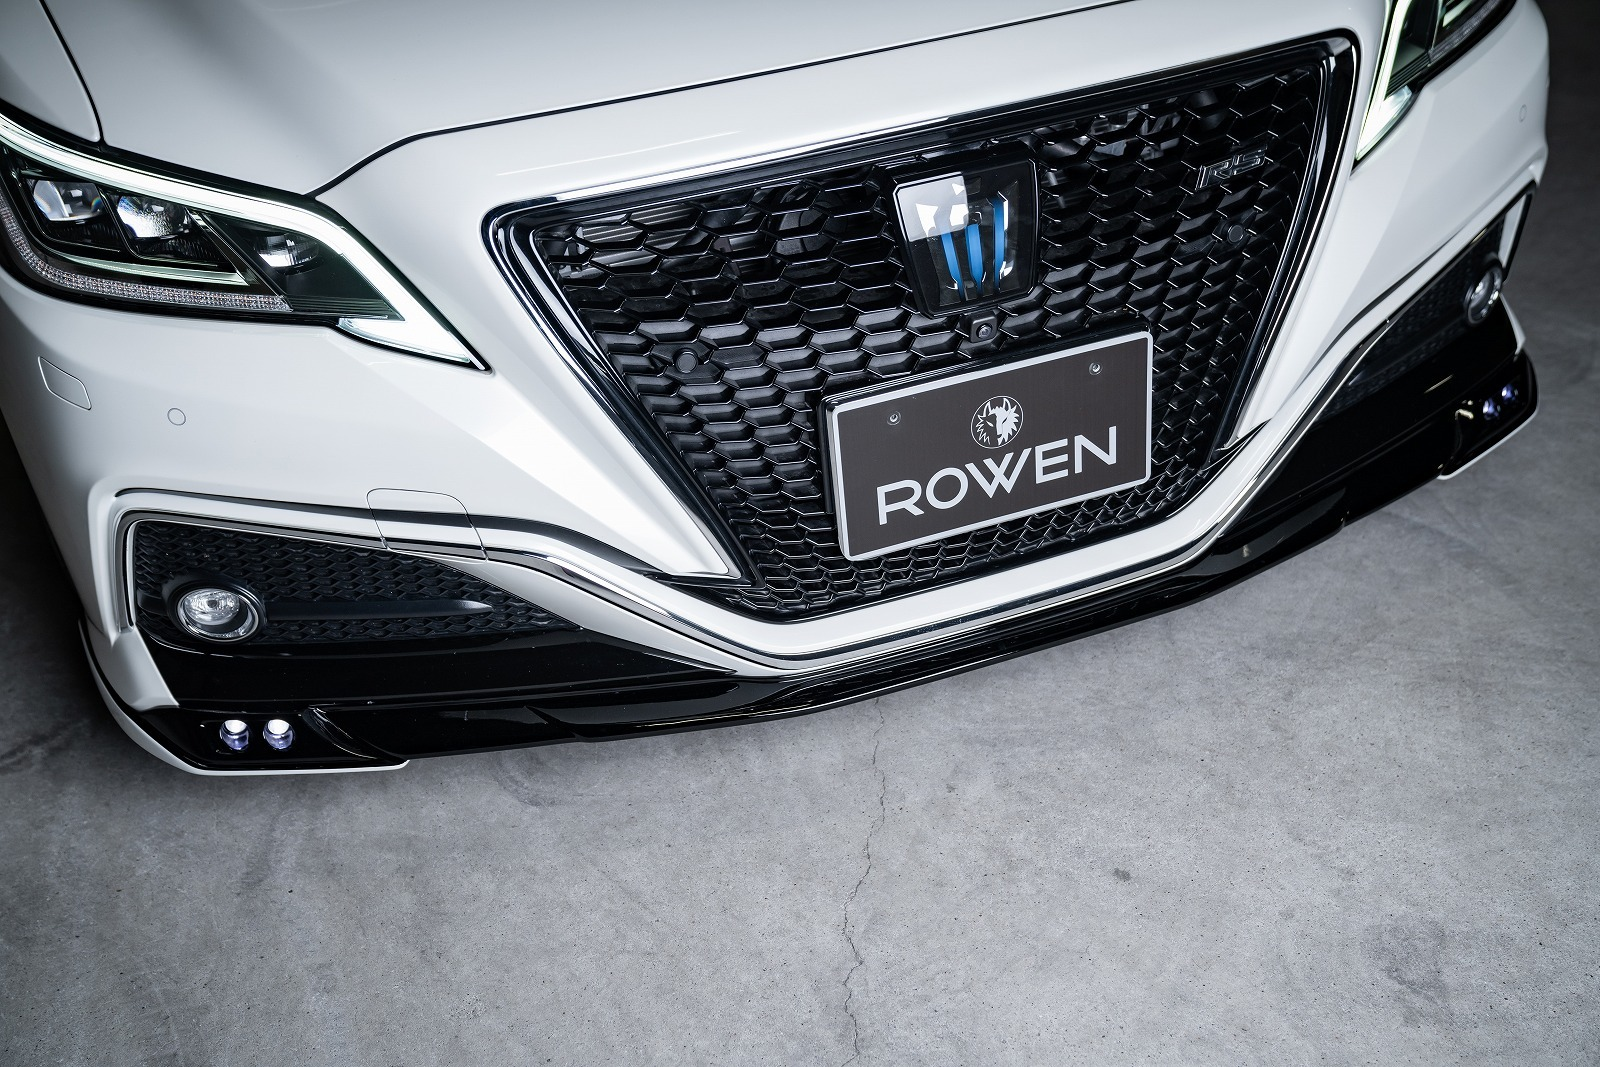 Rowen body kit for Toyota 220 CROWN RS carbon